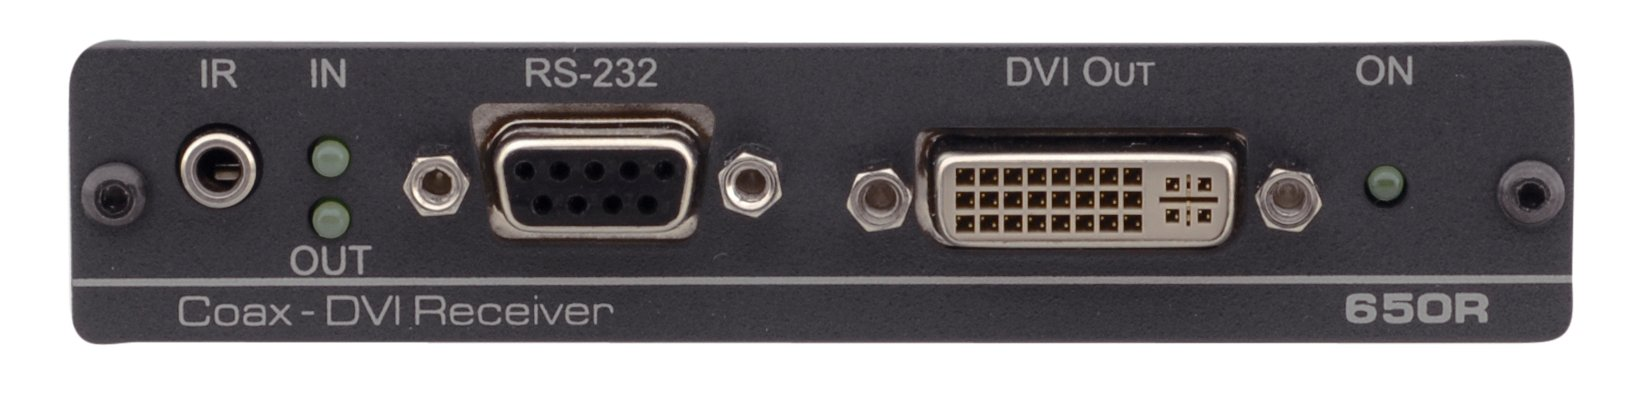 DVI, Bidirectional RS-232 & IR over Coax Receiver